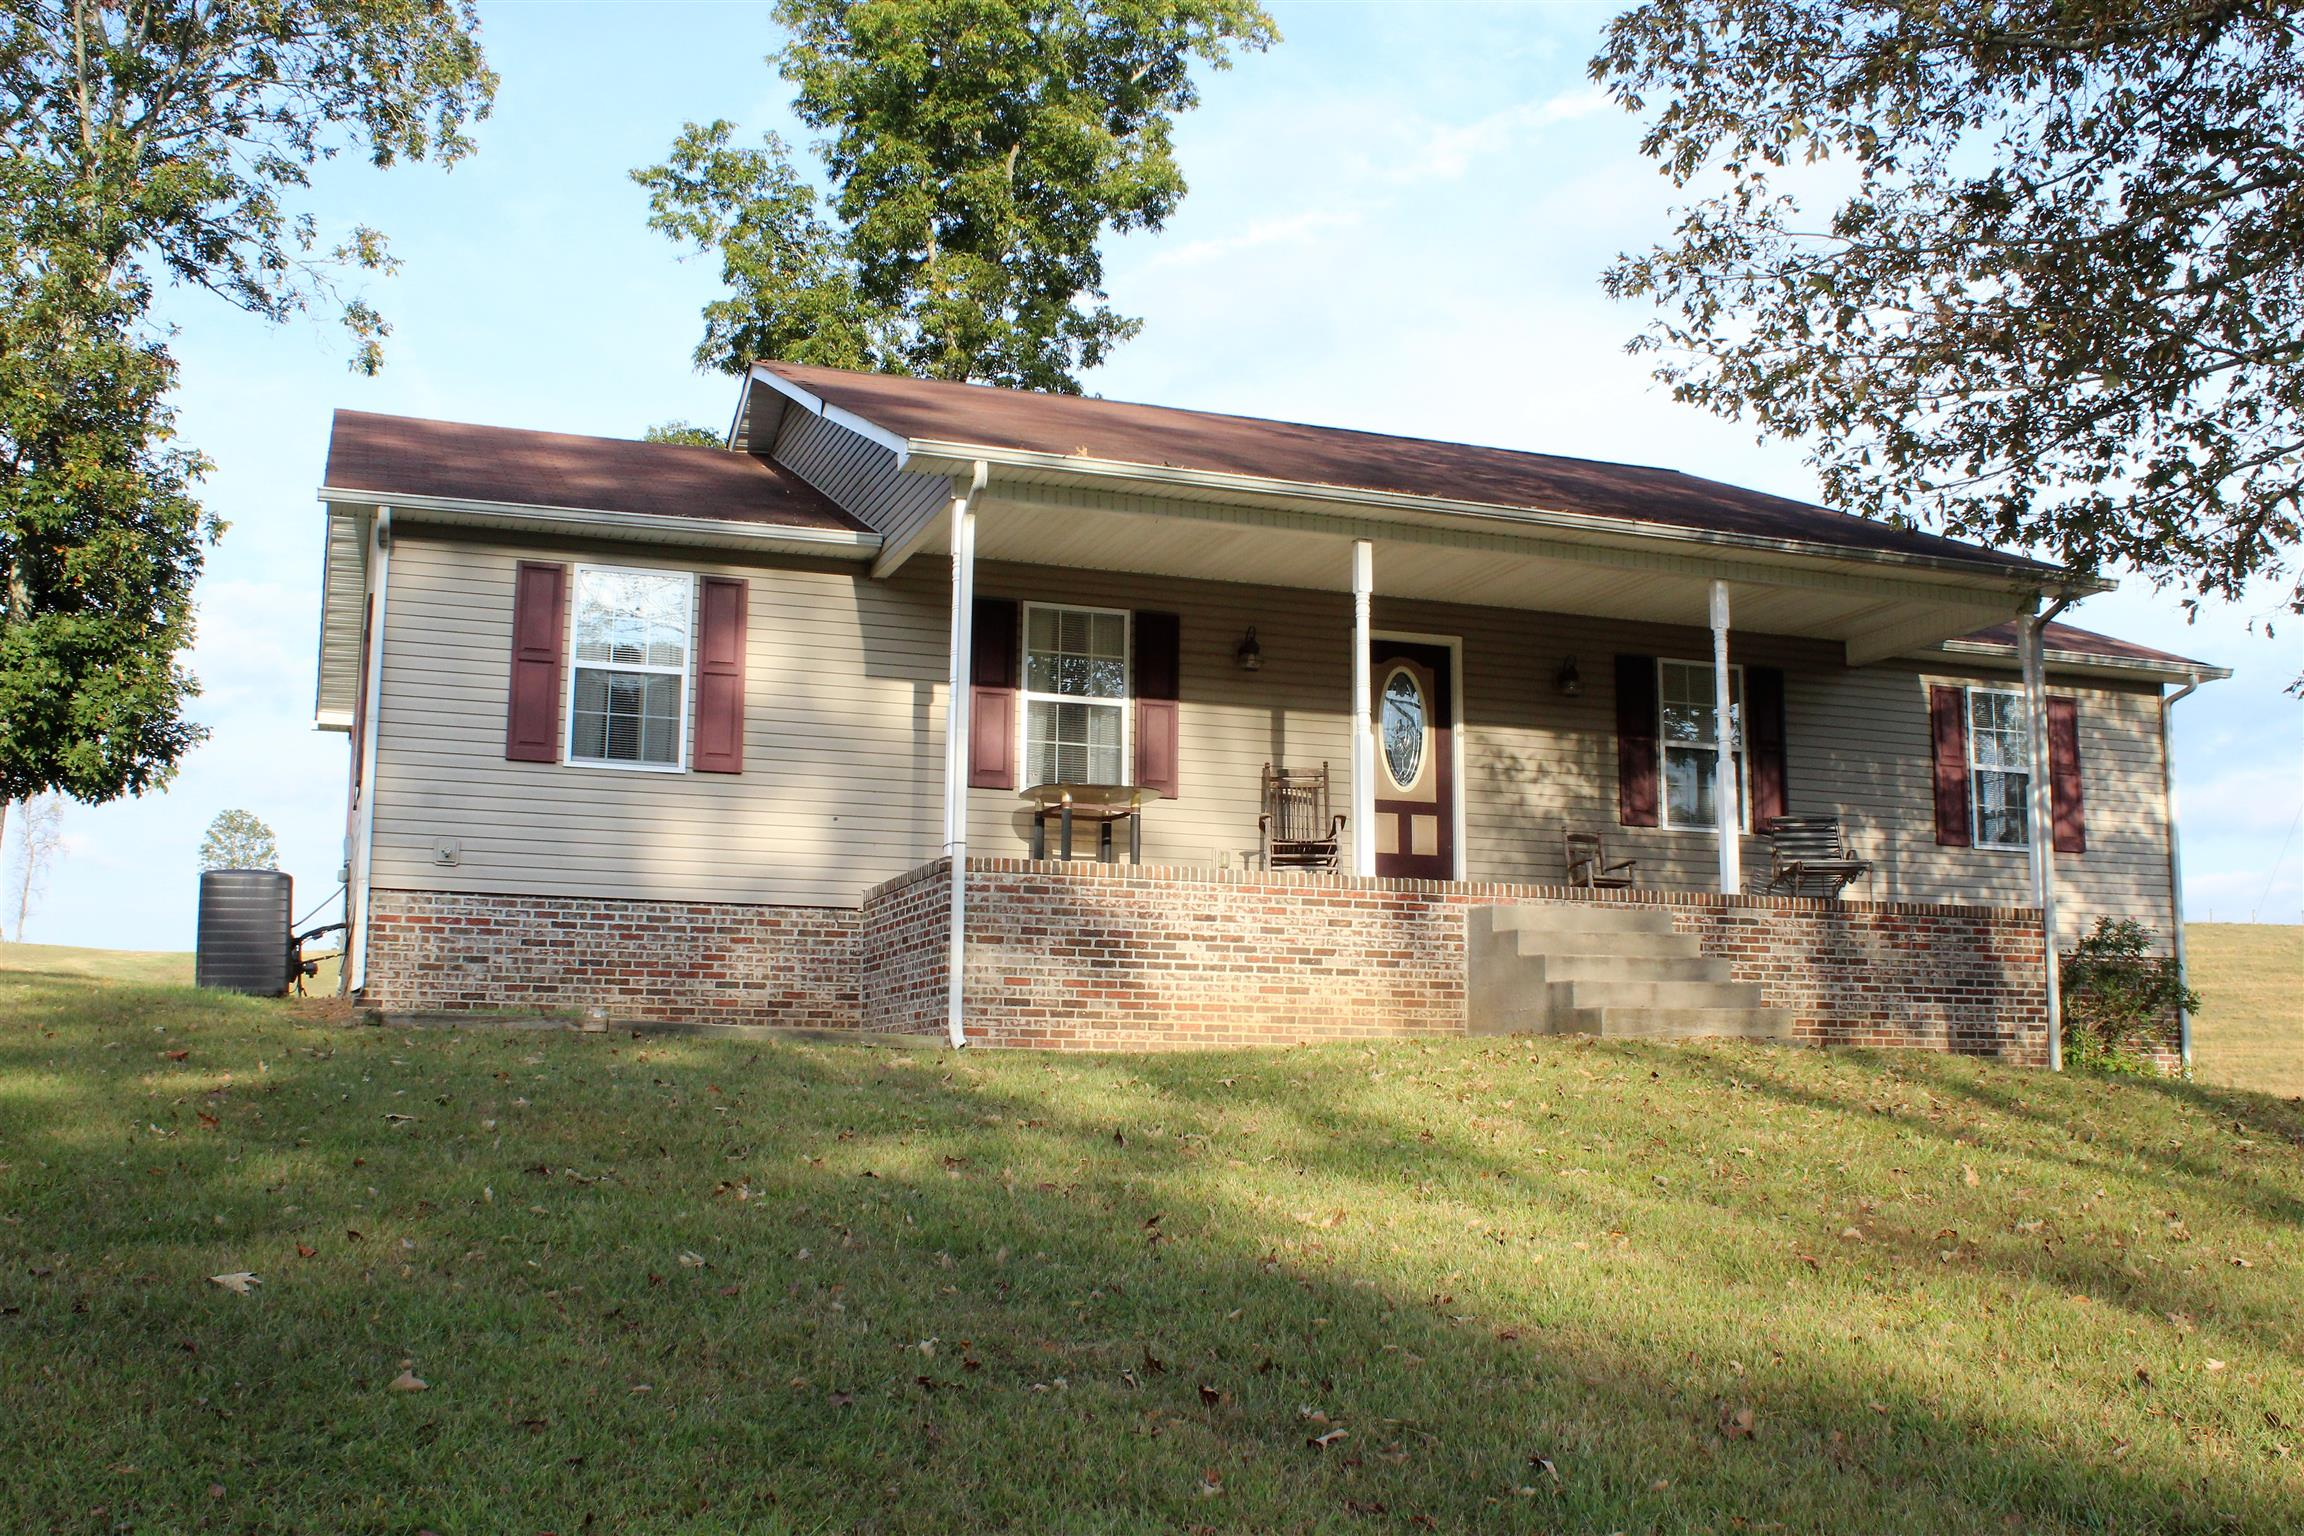 5502 Highway 46, N, Cumberland City, TN 37050 - Cumberland City, TN real estate listing